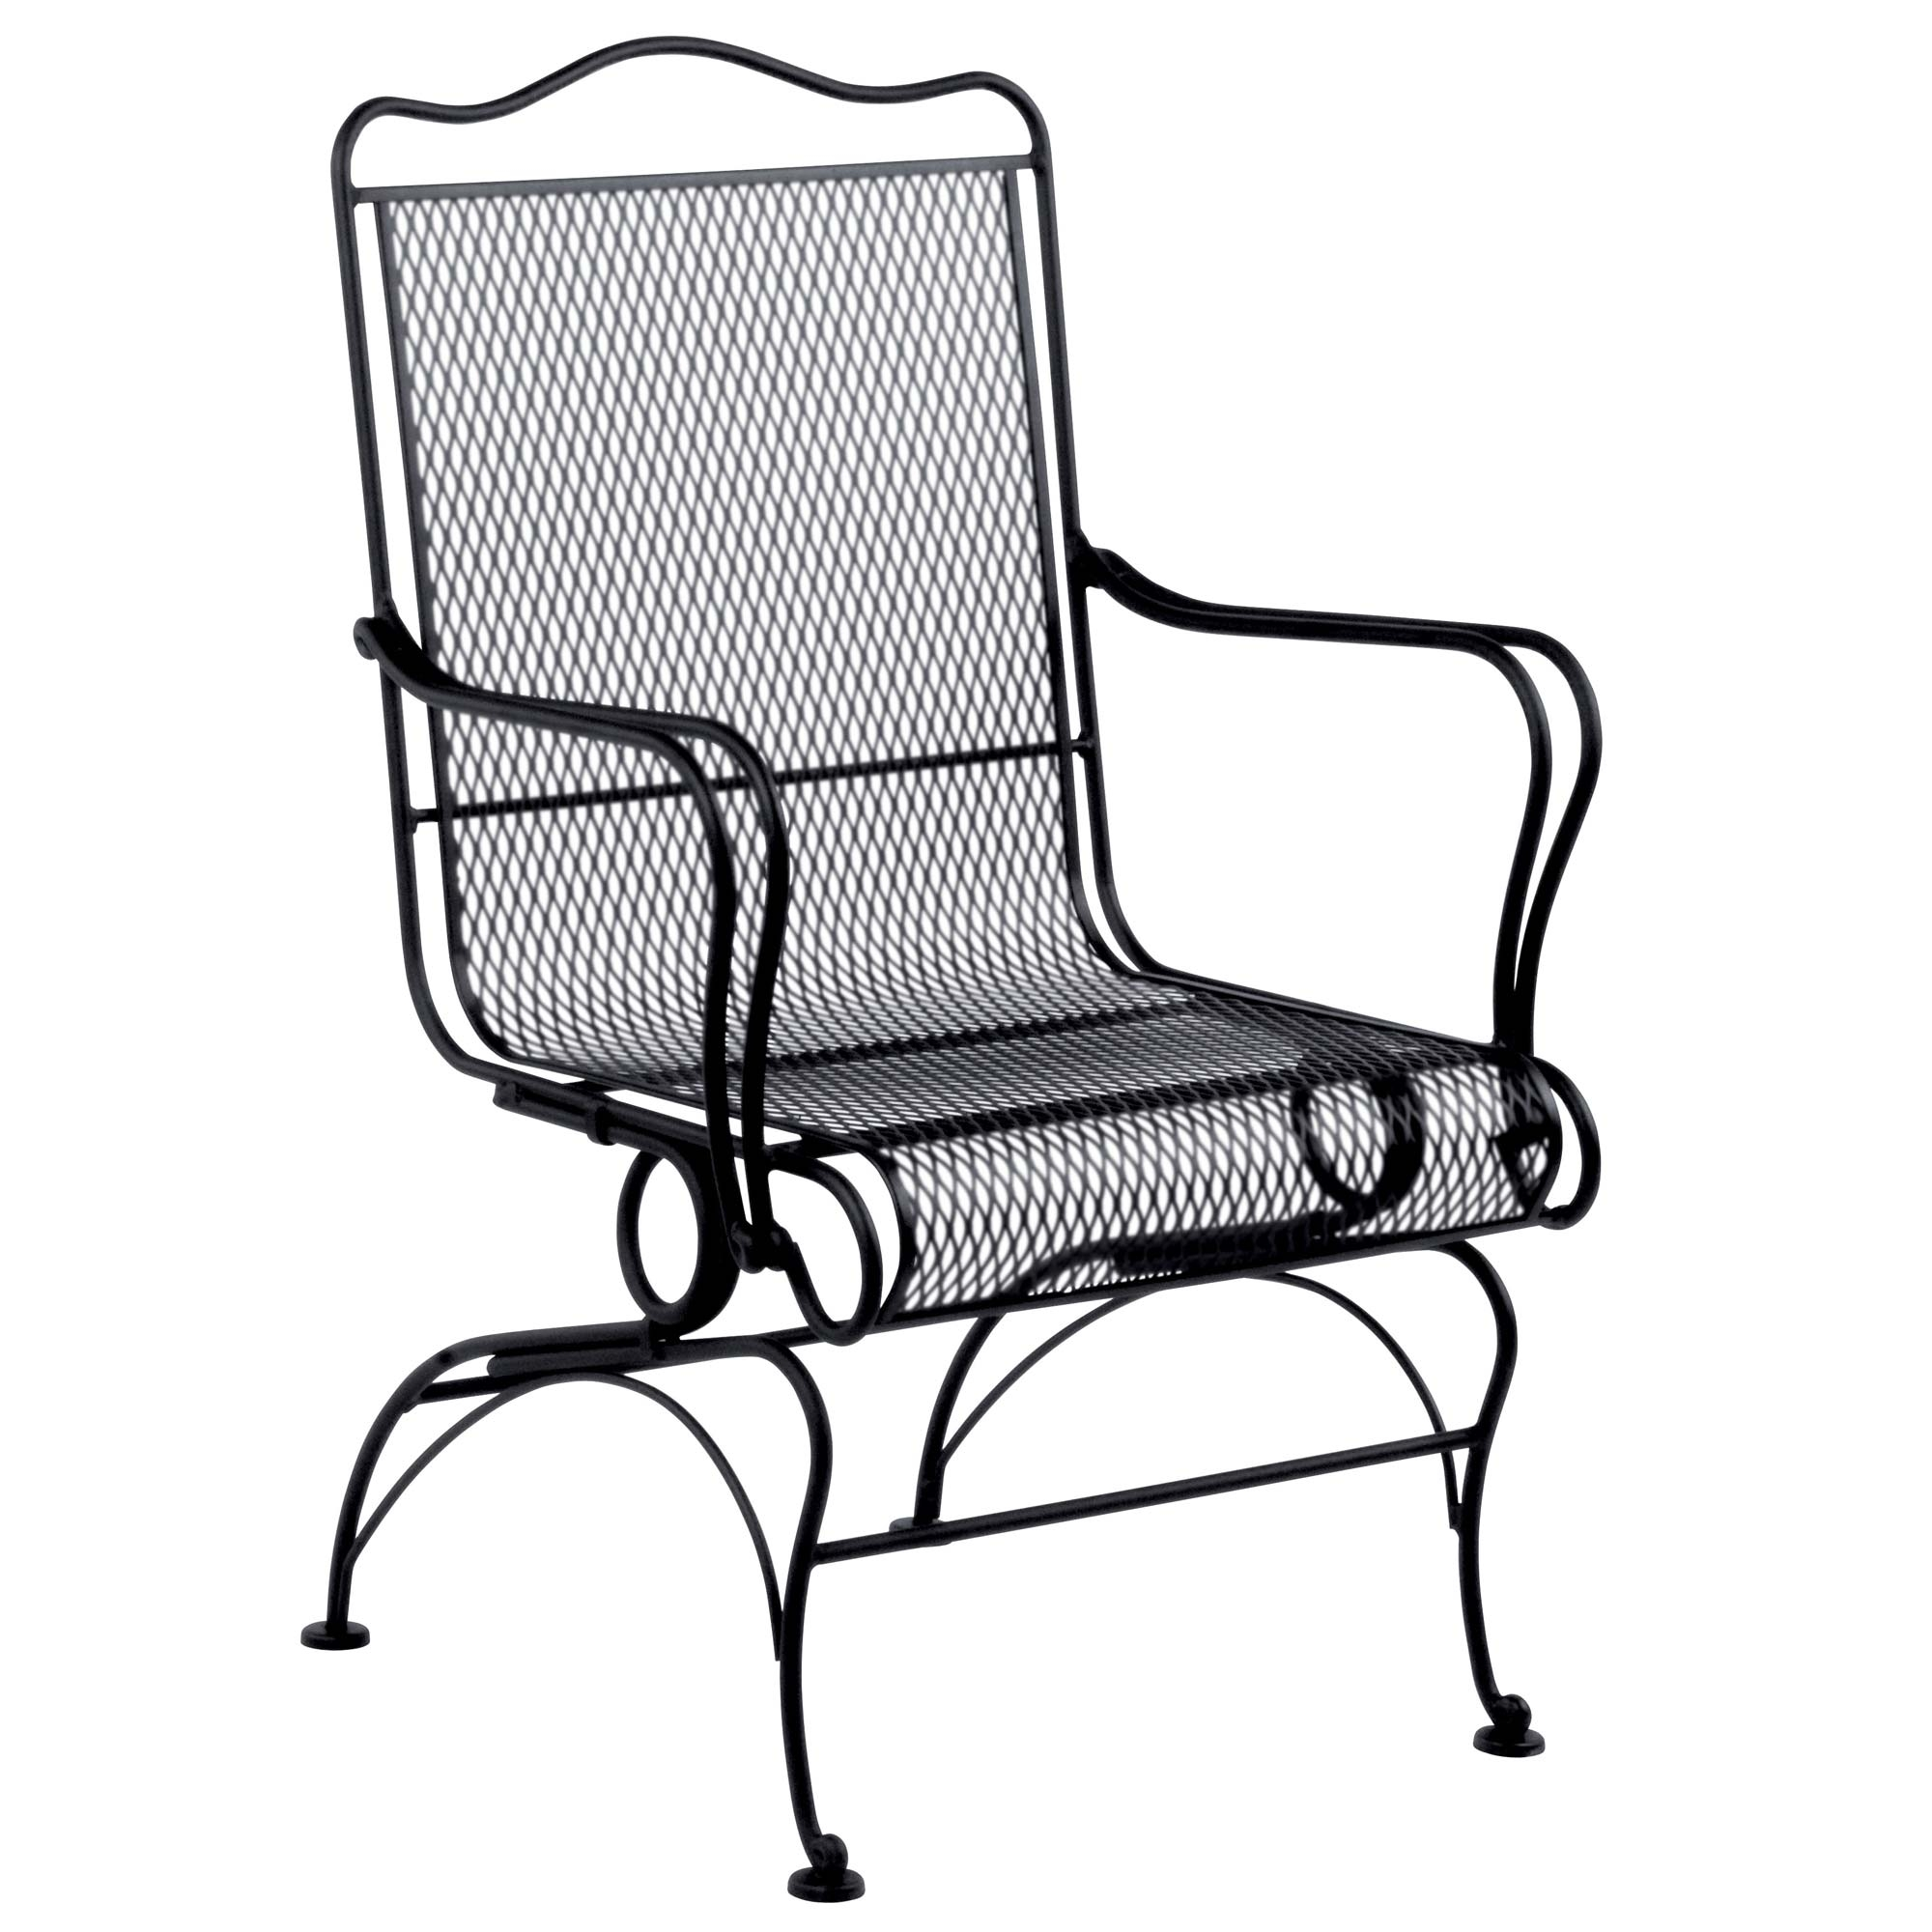 pictured is the tucson high back coil spring chair from